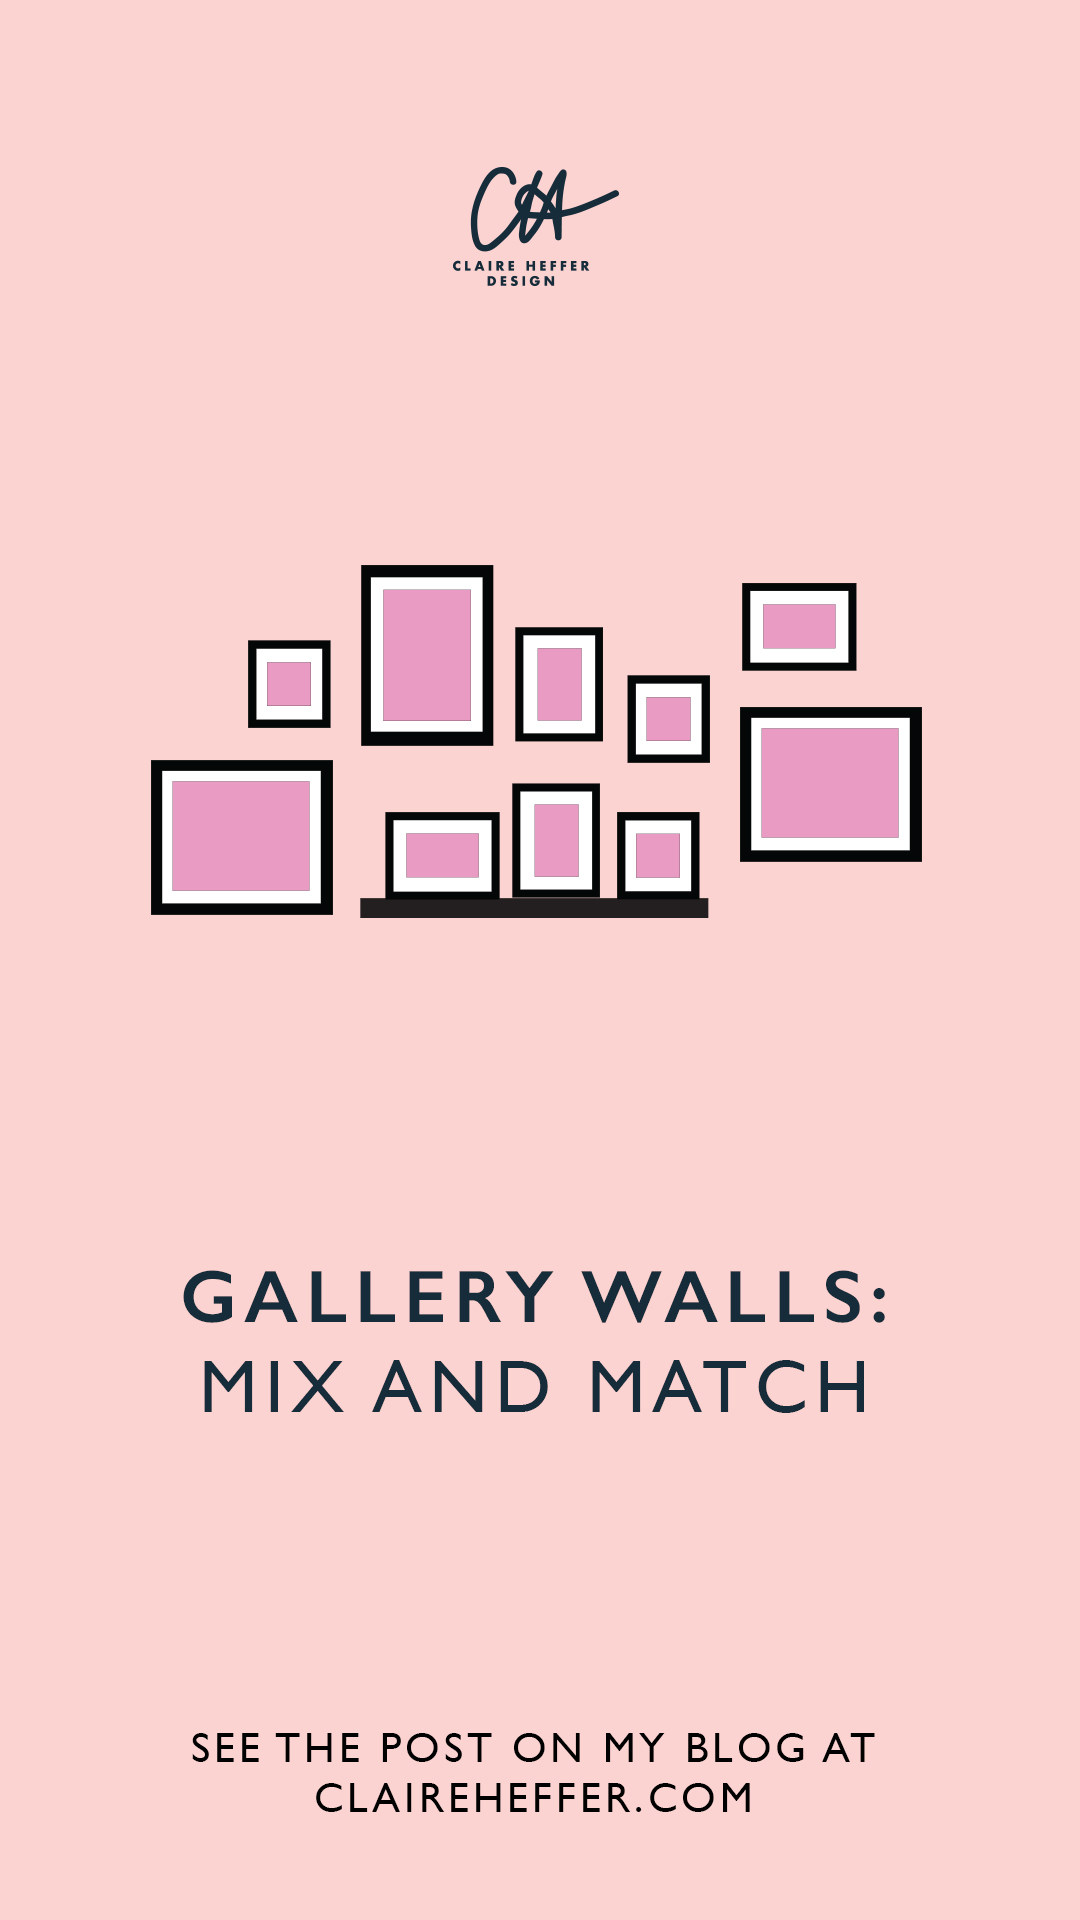 GALLERY WALLS MIX AND MATCH.jpg